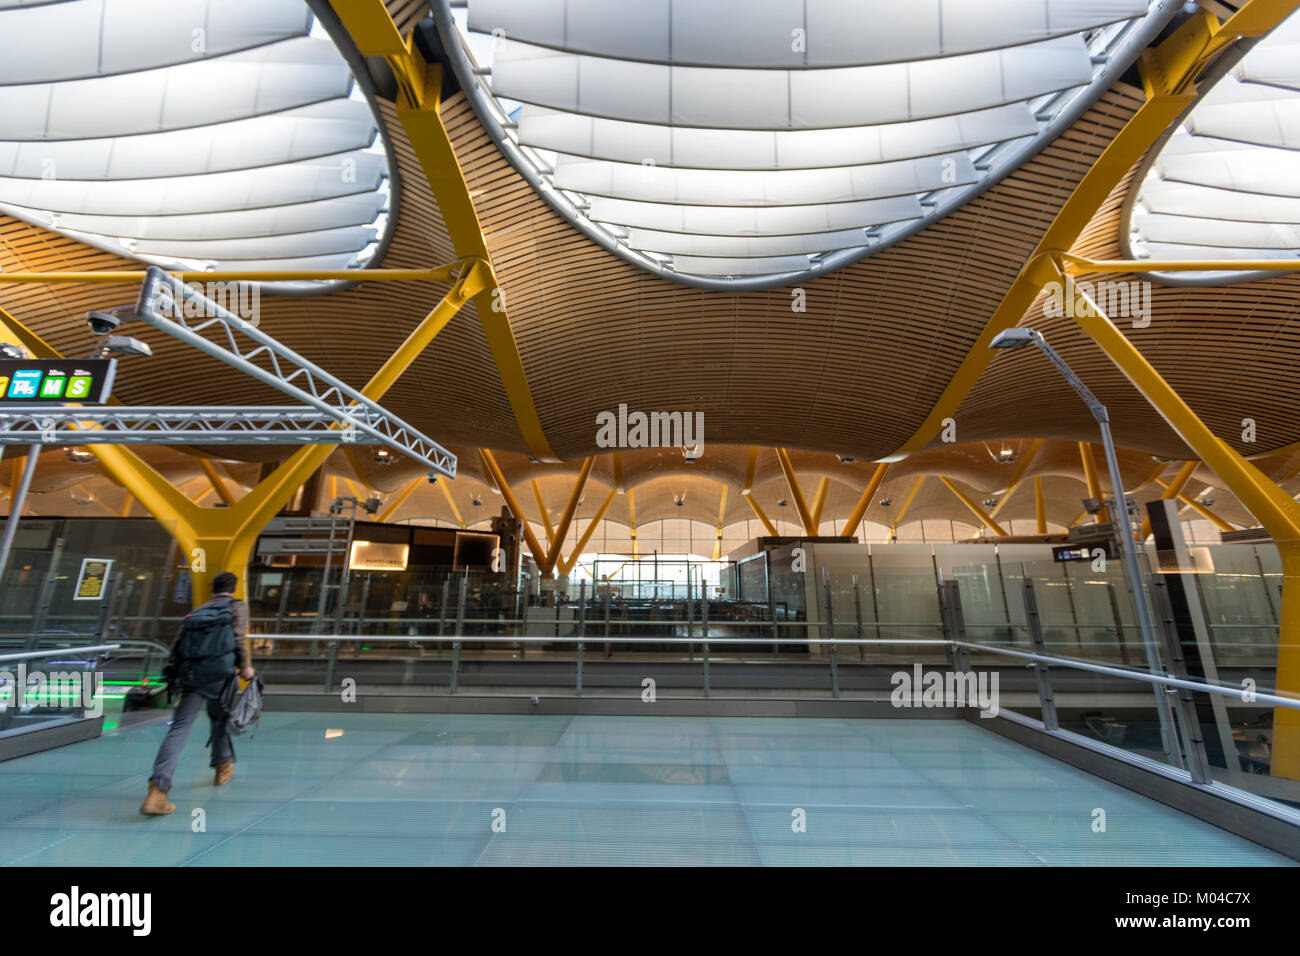 Adolfo Suárez Madrid–Barajas Airport  terminals T4, designed by architects Antonio Lamela and Richard Rogers - Stock Image